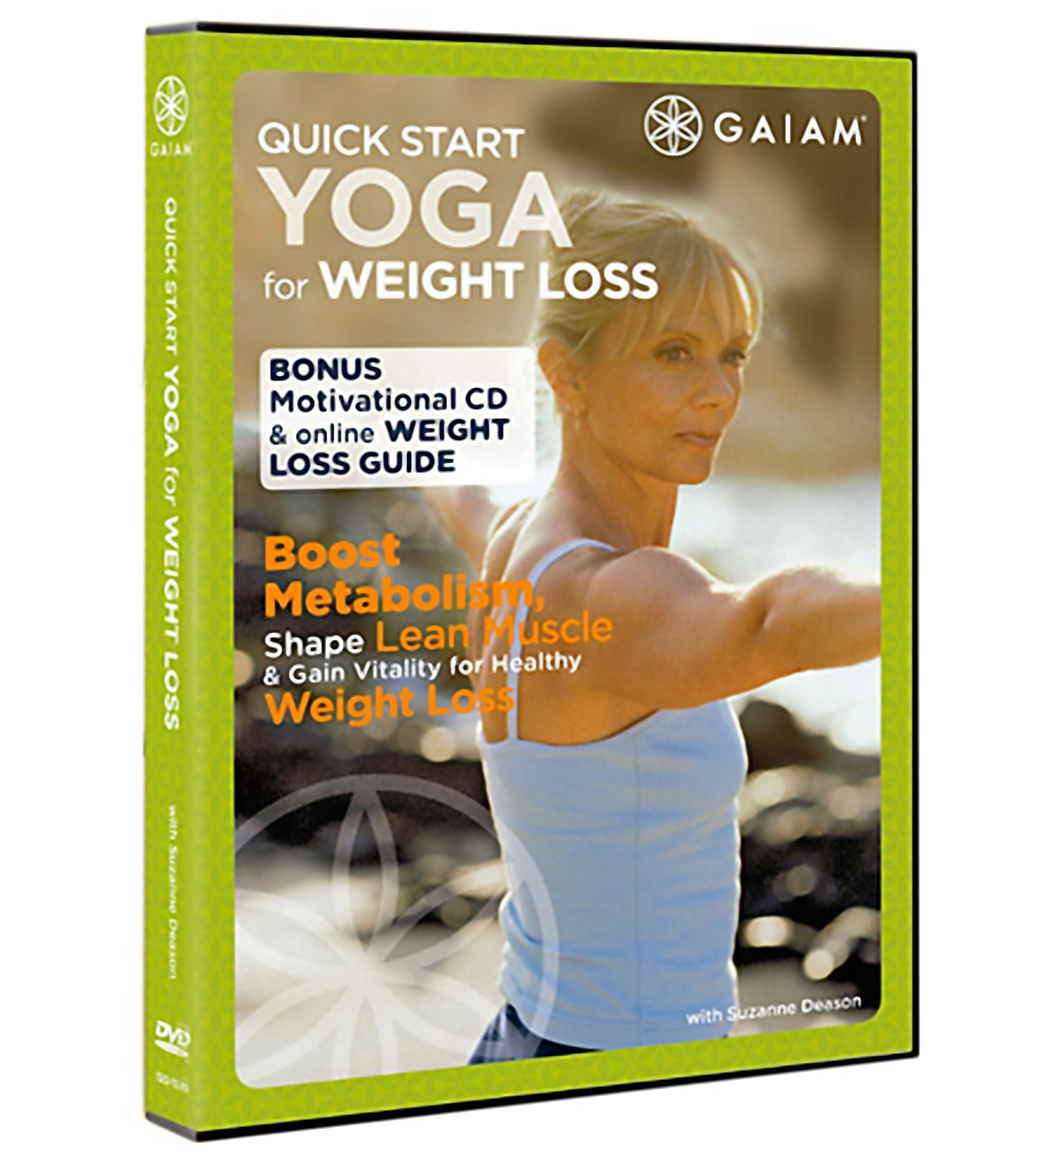 Gaiam Quick Start Yoga For Weight Loss DVD At SwimOutlet.com